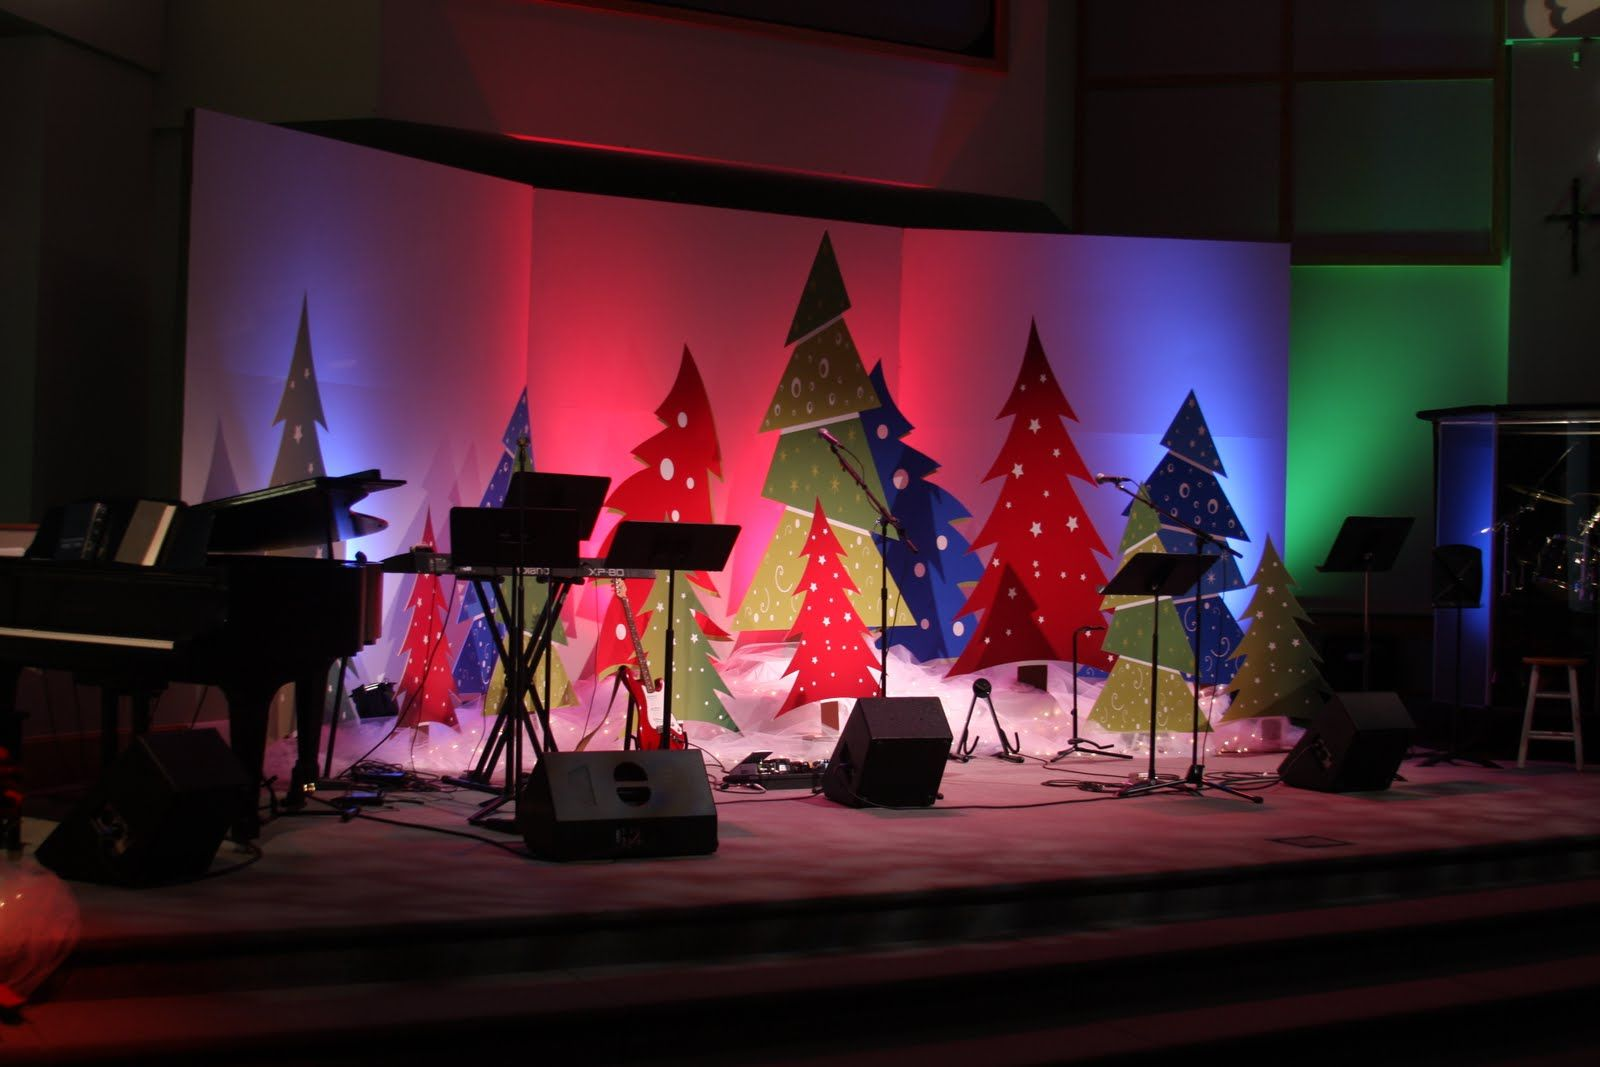 christmas stage set ideas posted by first church zeeland 1 comment - Christmas Stage Decorations